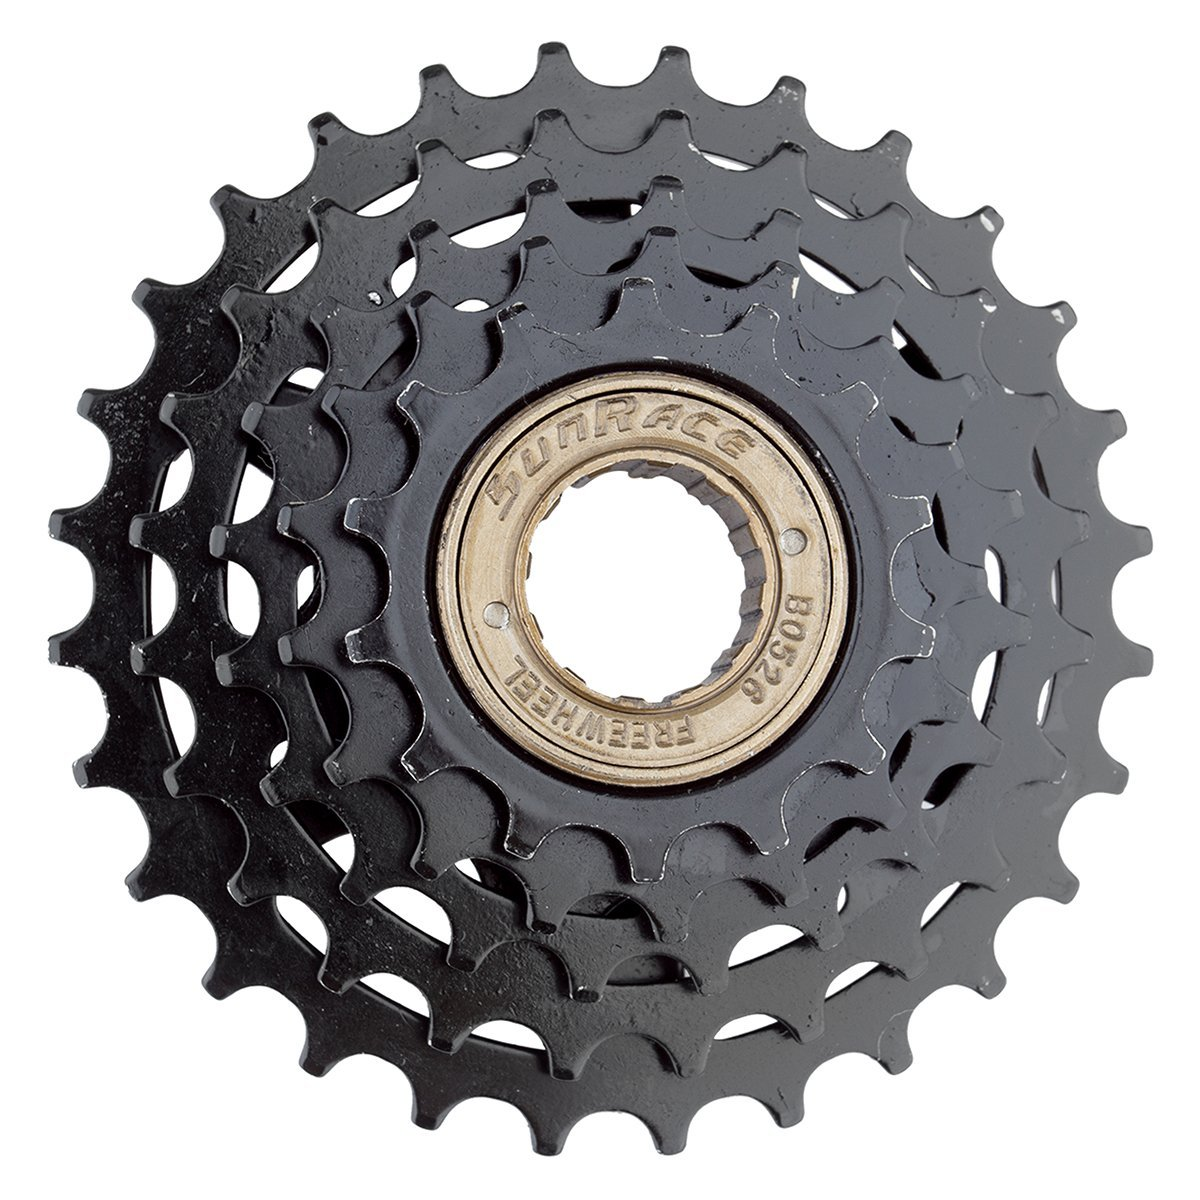 ced4f88e533 Cheap 14 28 Freewheel, find 14 28 Freewheel deals on line at Alibaba.com